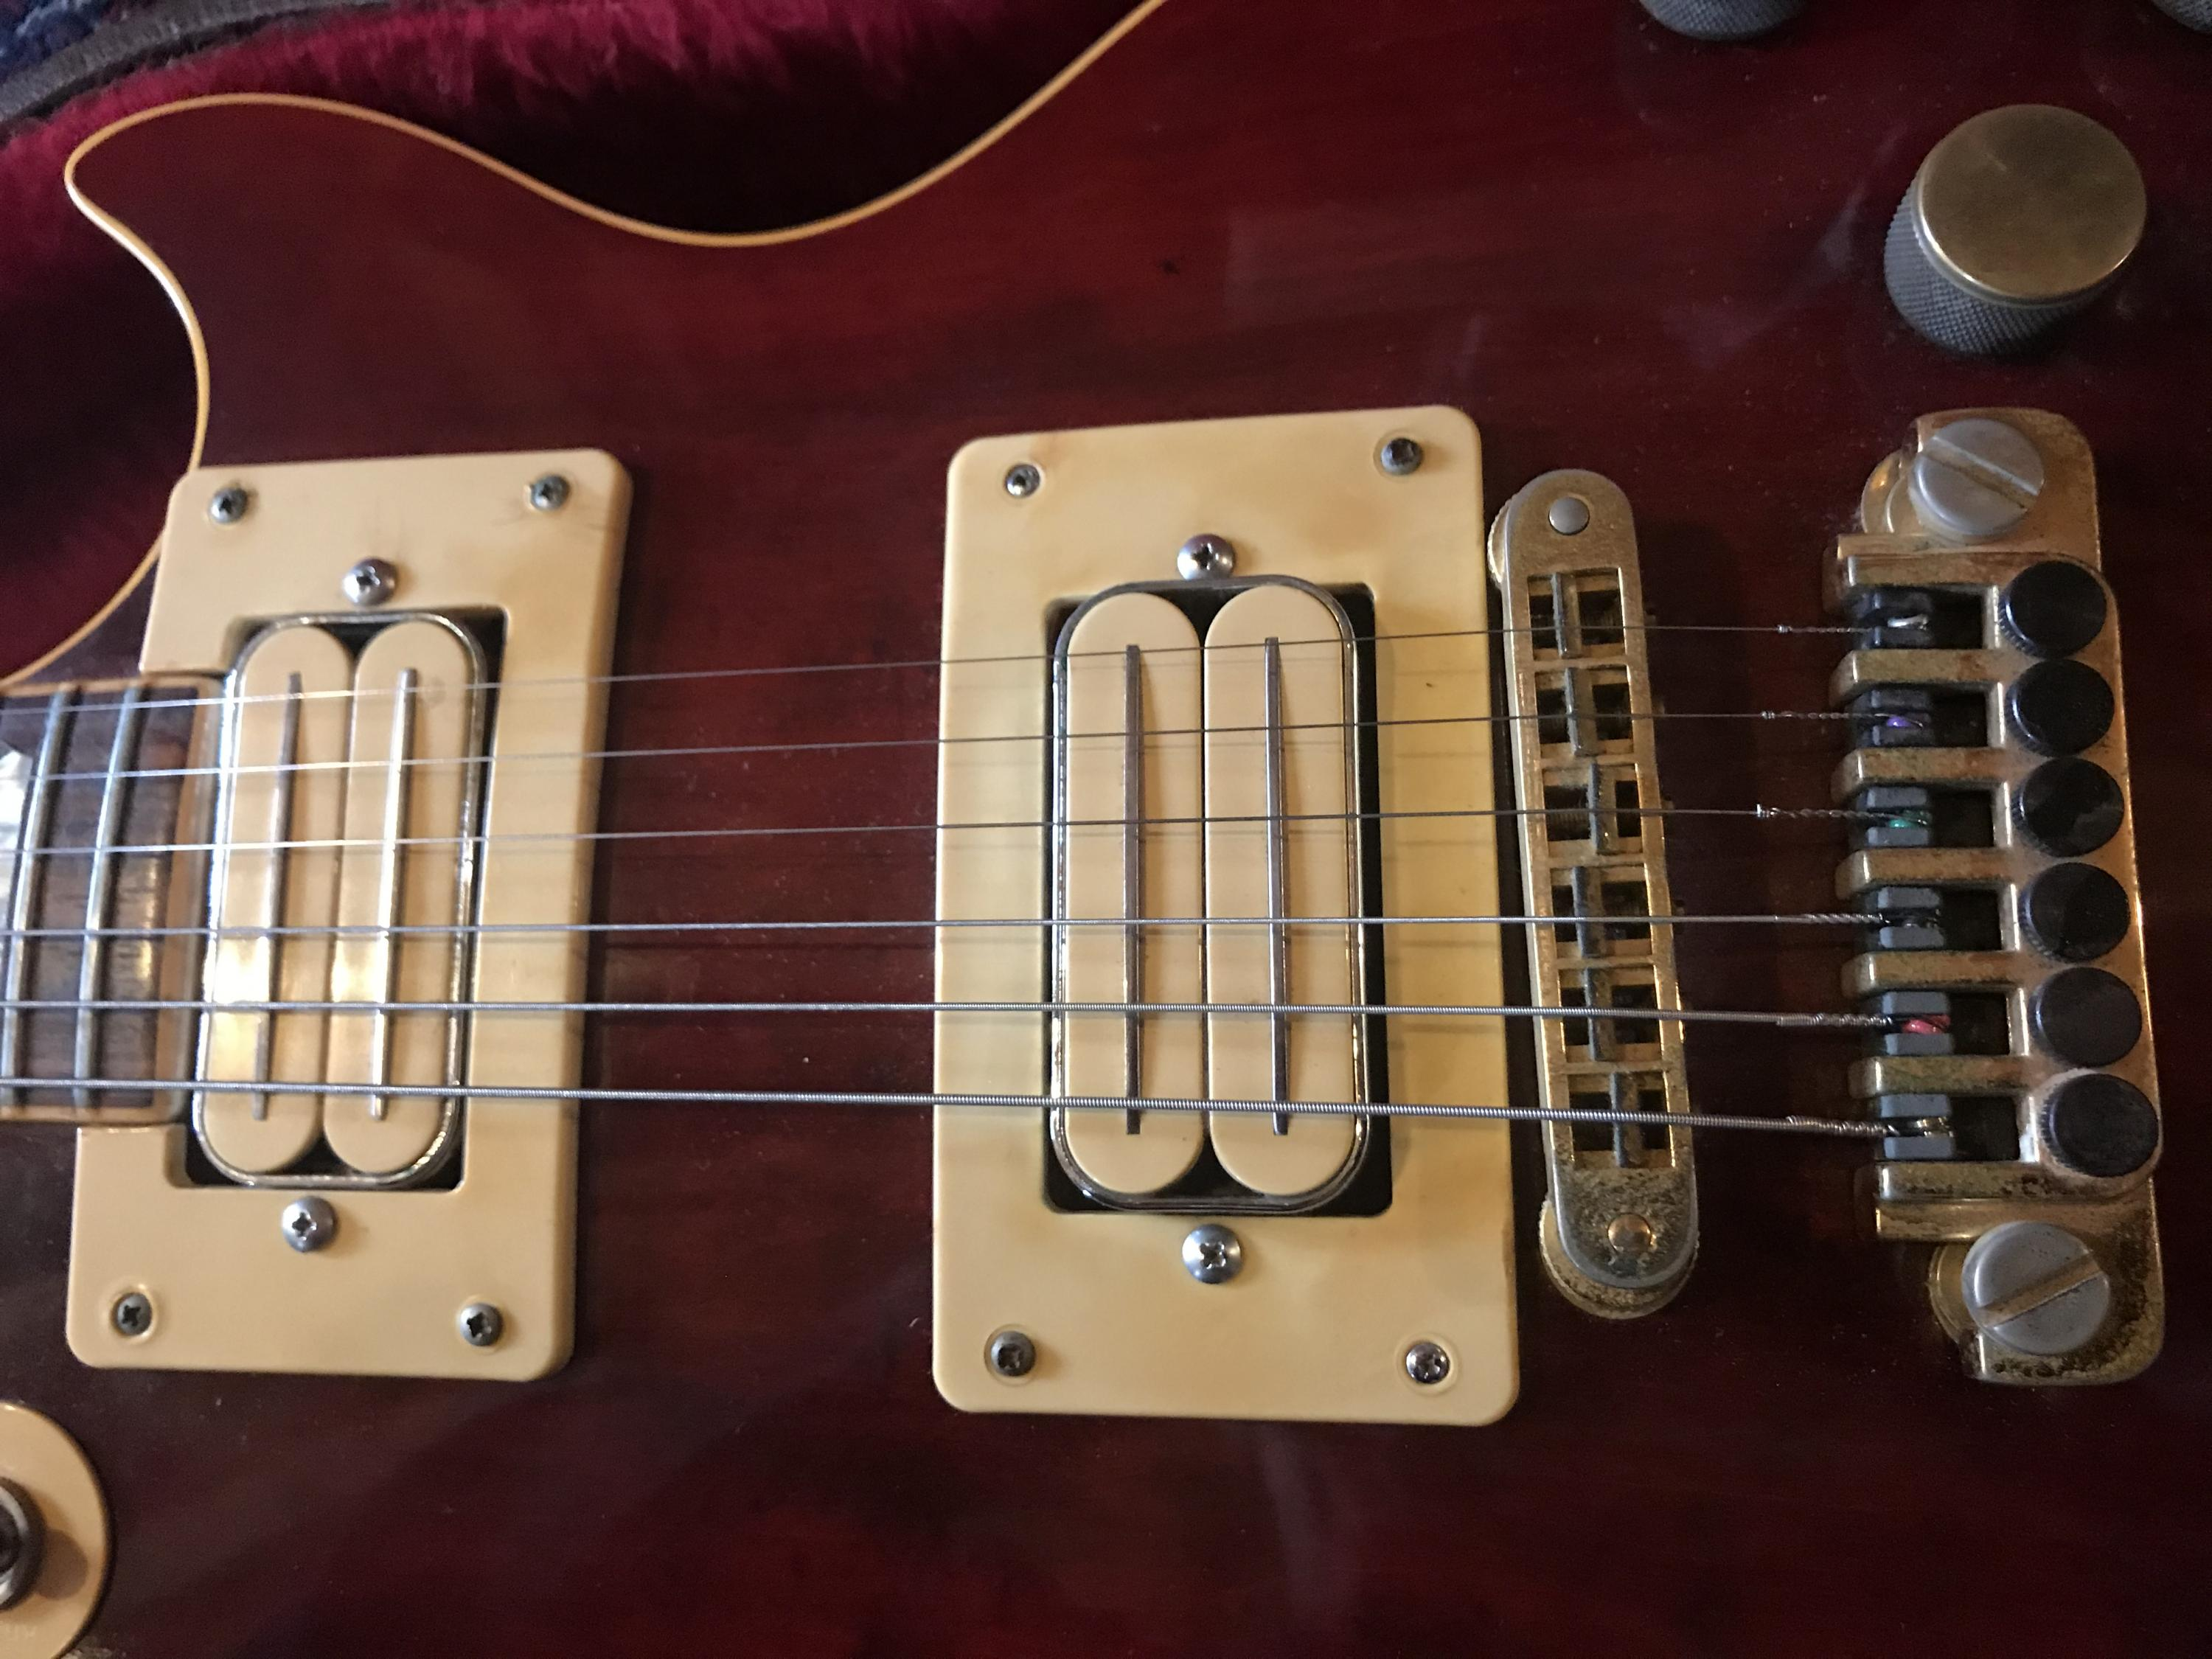 restore or not to restore a Les Paul-img_3191-jpg